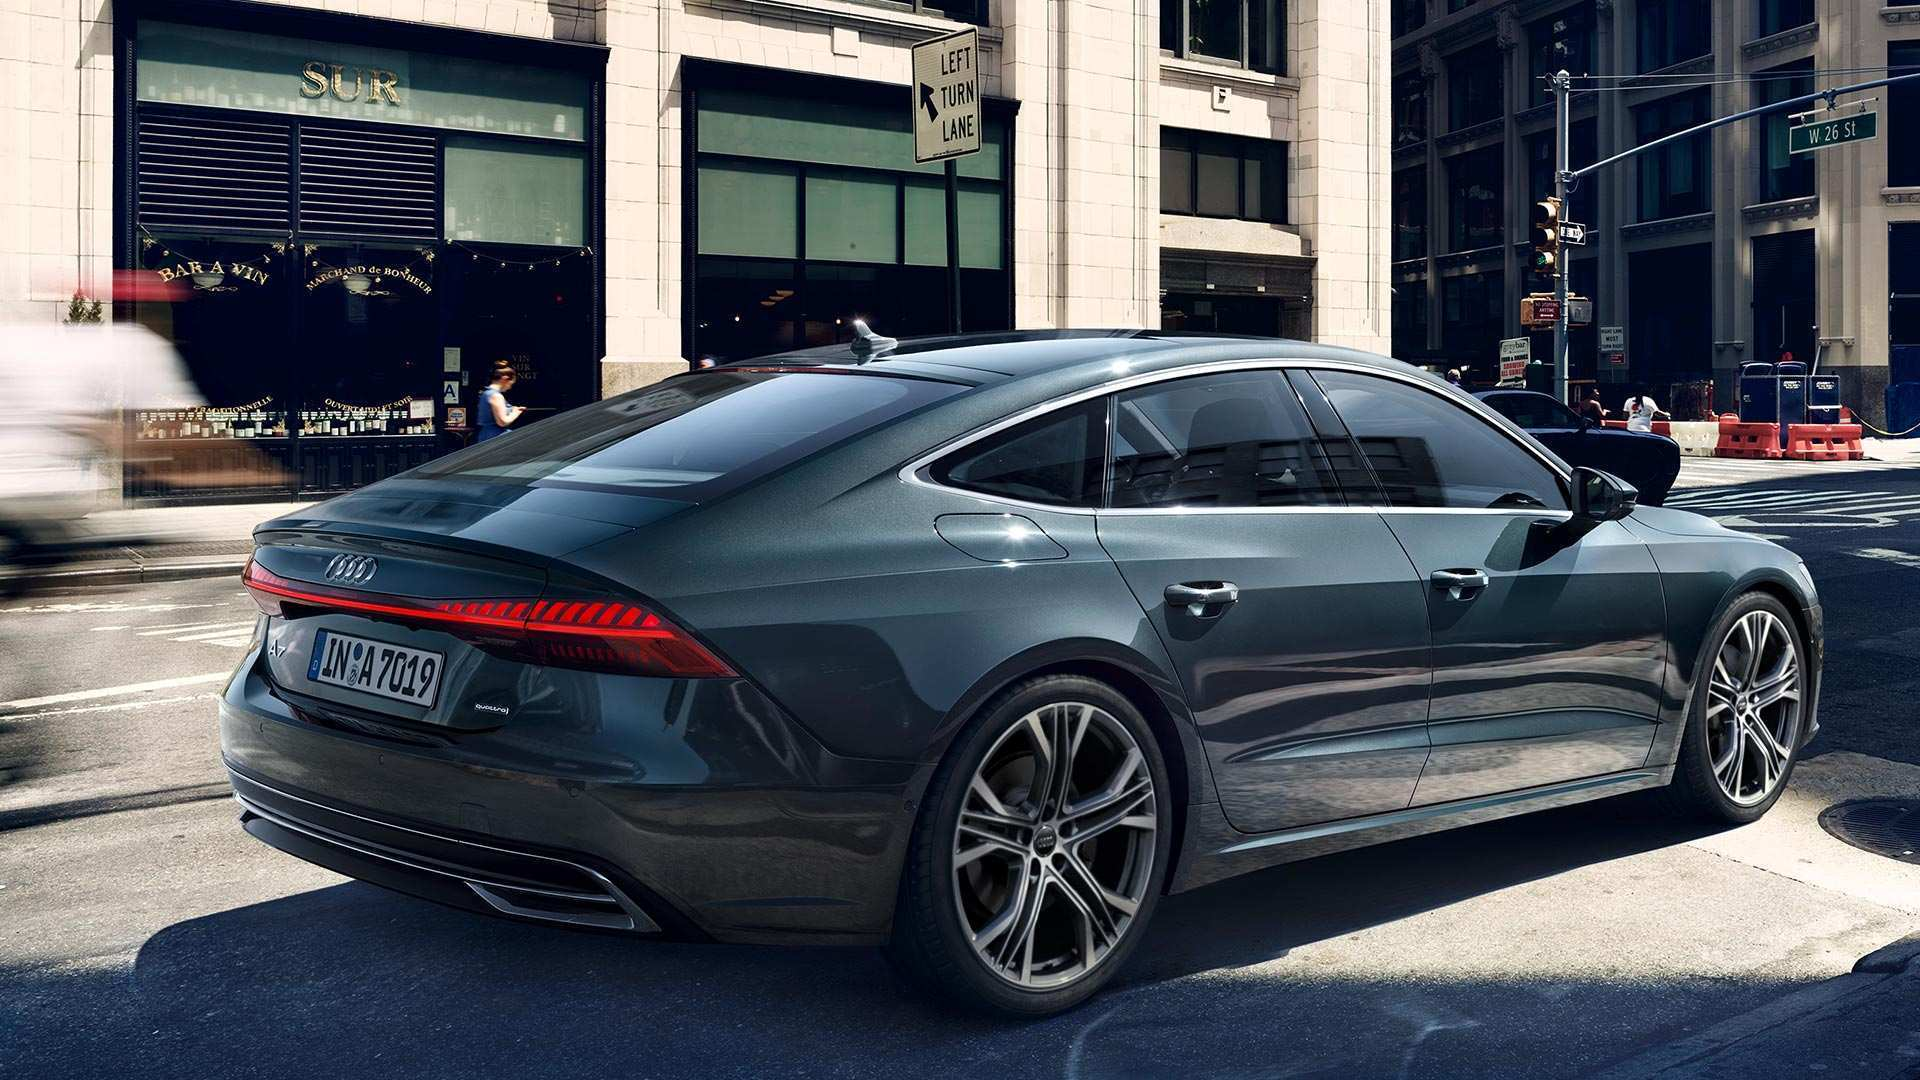 58 New 2019 Audi A7 Colors Style